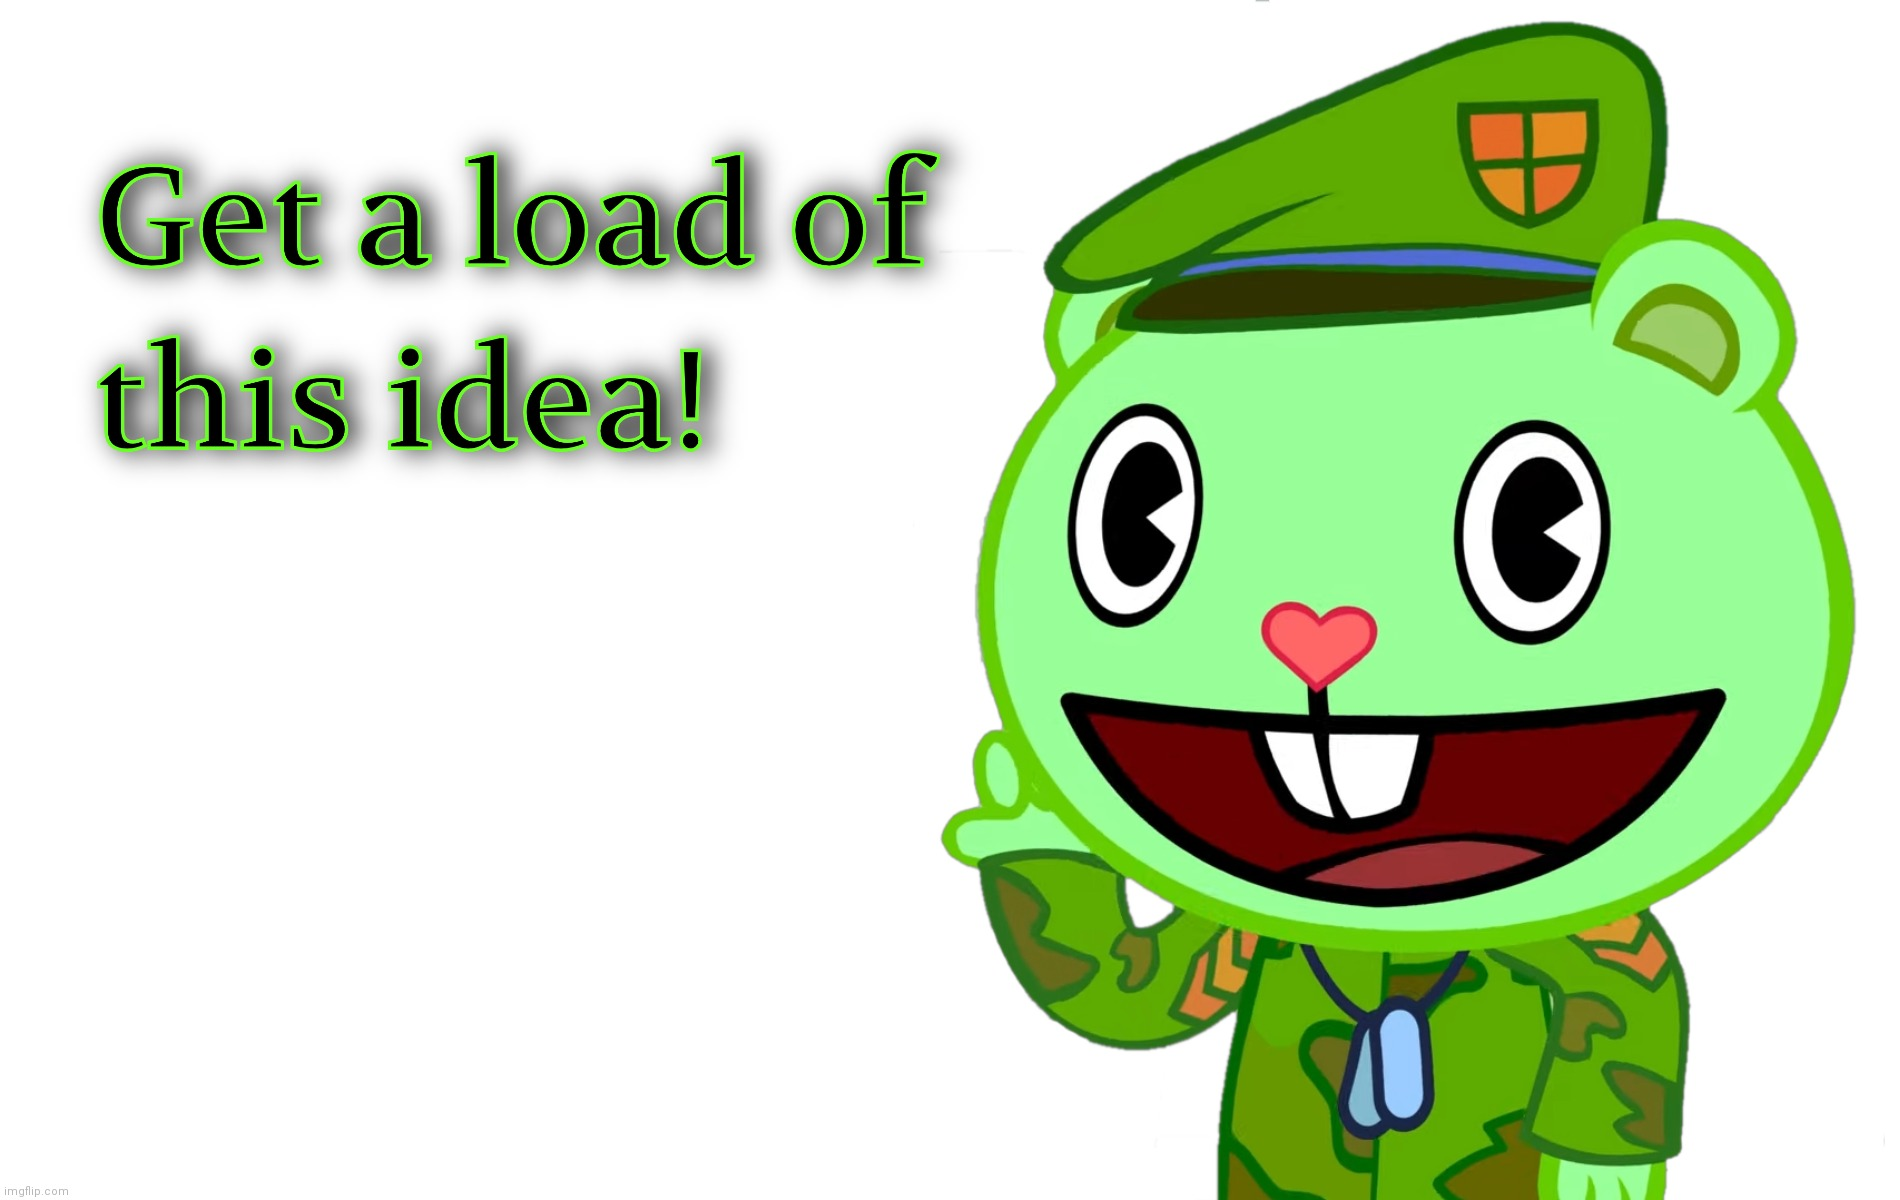 Get a load of this idea! (HTF) | image tagged in get a load of this idea htf | made w/ Imgflip meme maker